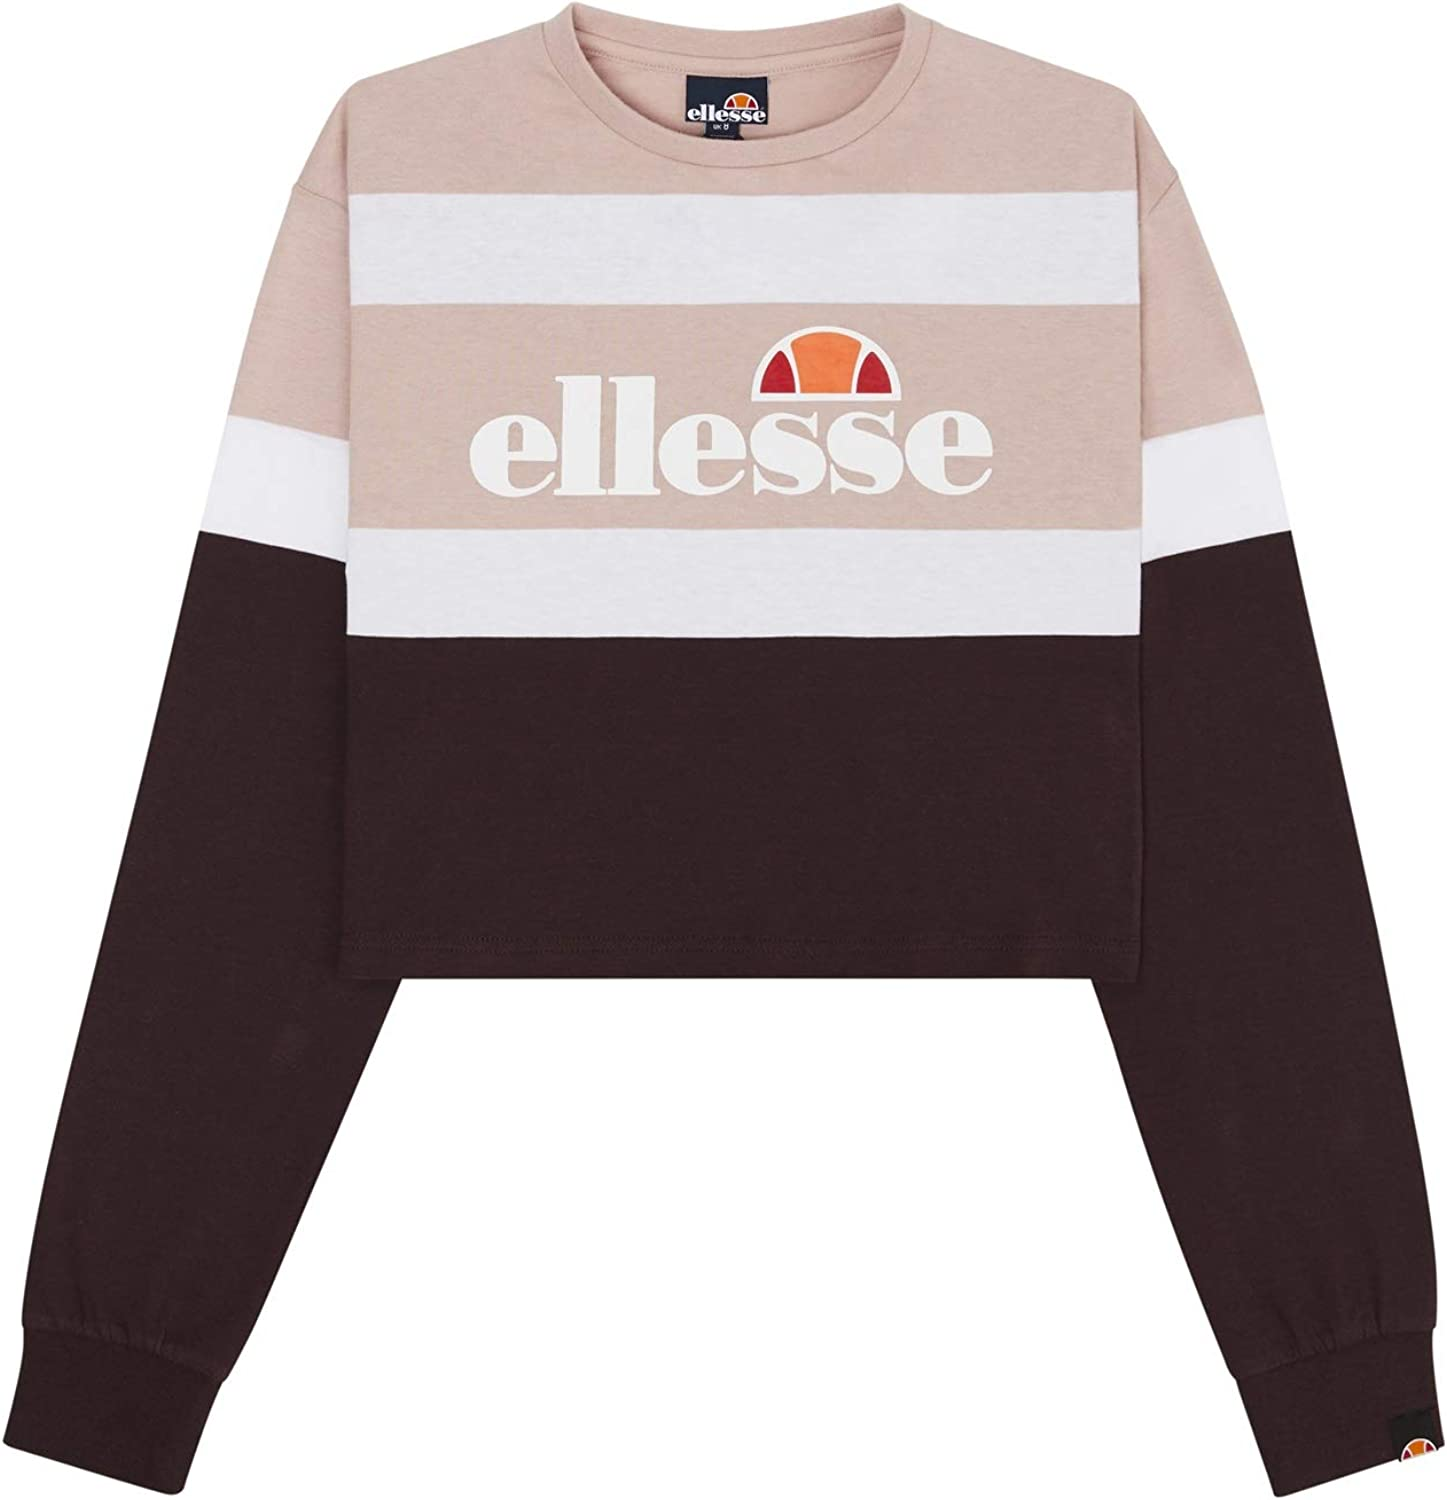 ellesse Max 76% OFF Women Long-Sleeve T-Shirt Color:Pink Vernes LS Size:8 New product